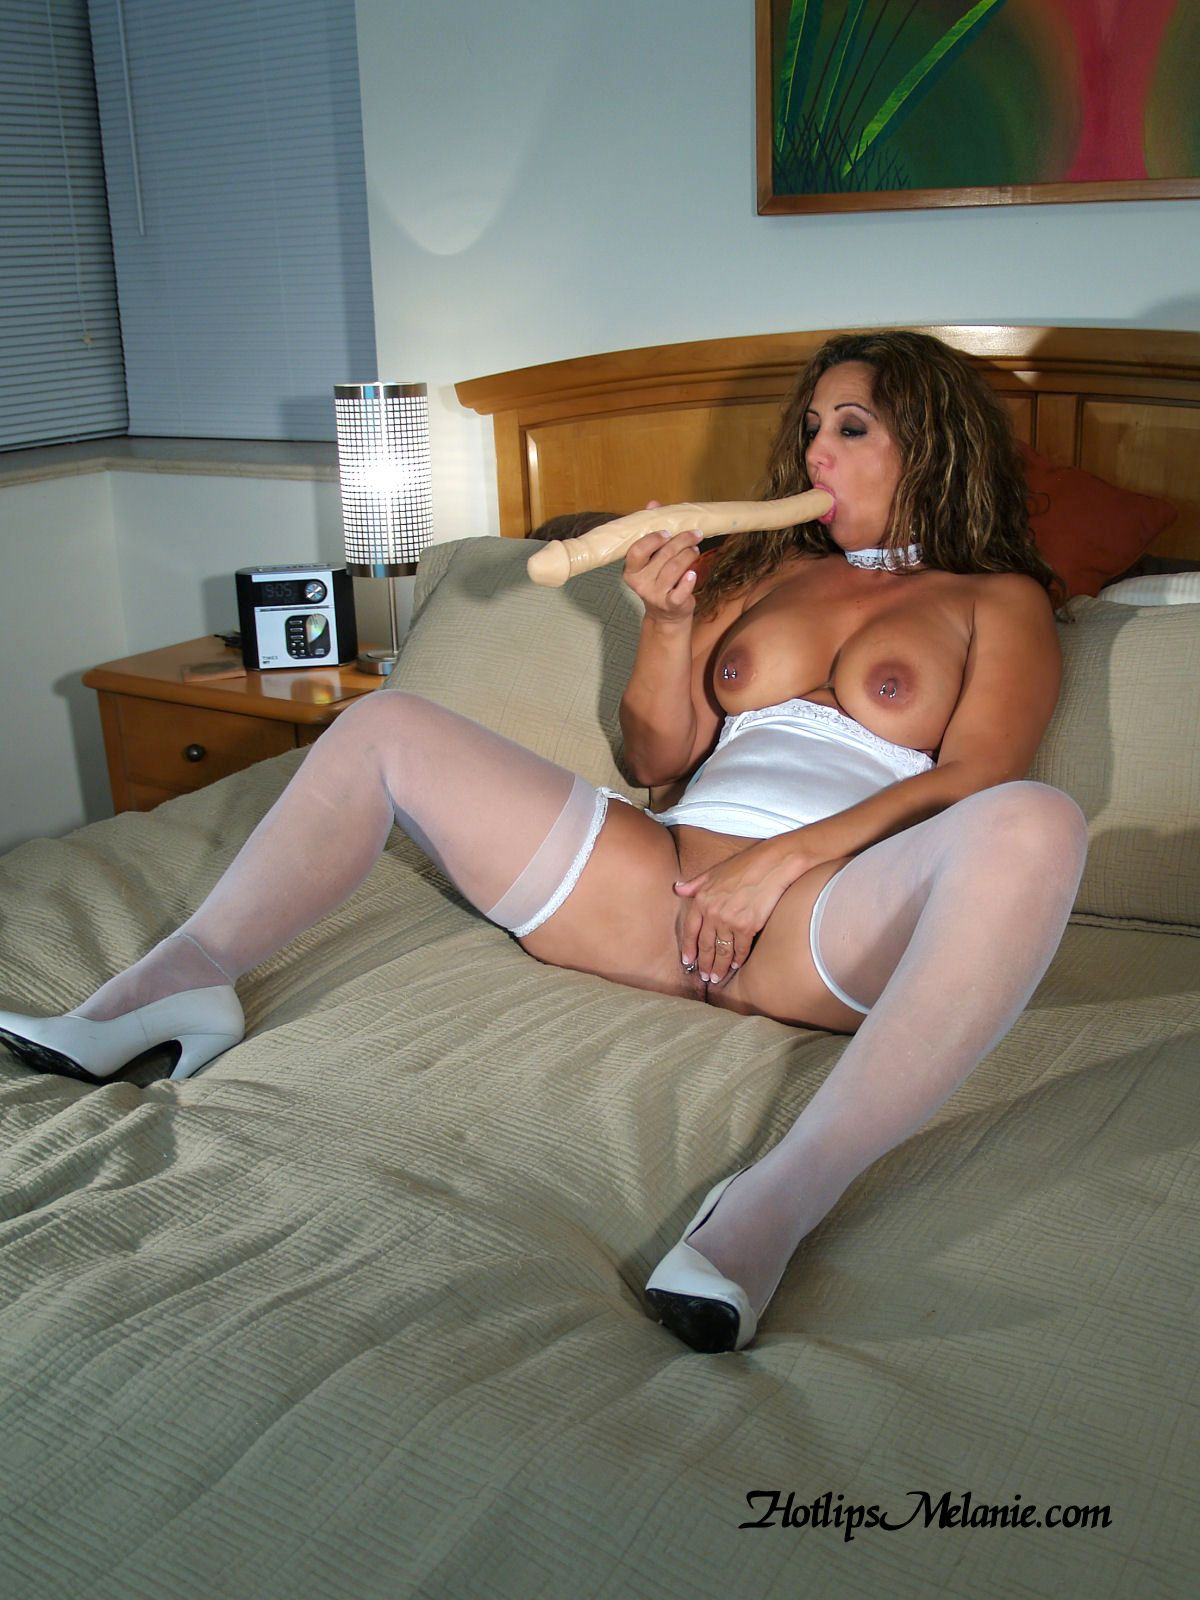 Latina Milf With Giant Dildo